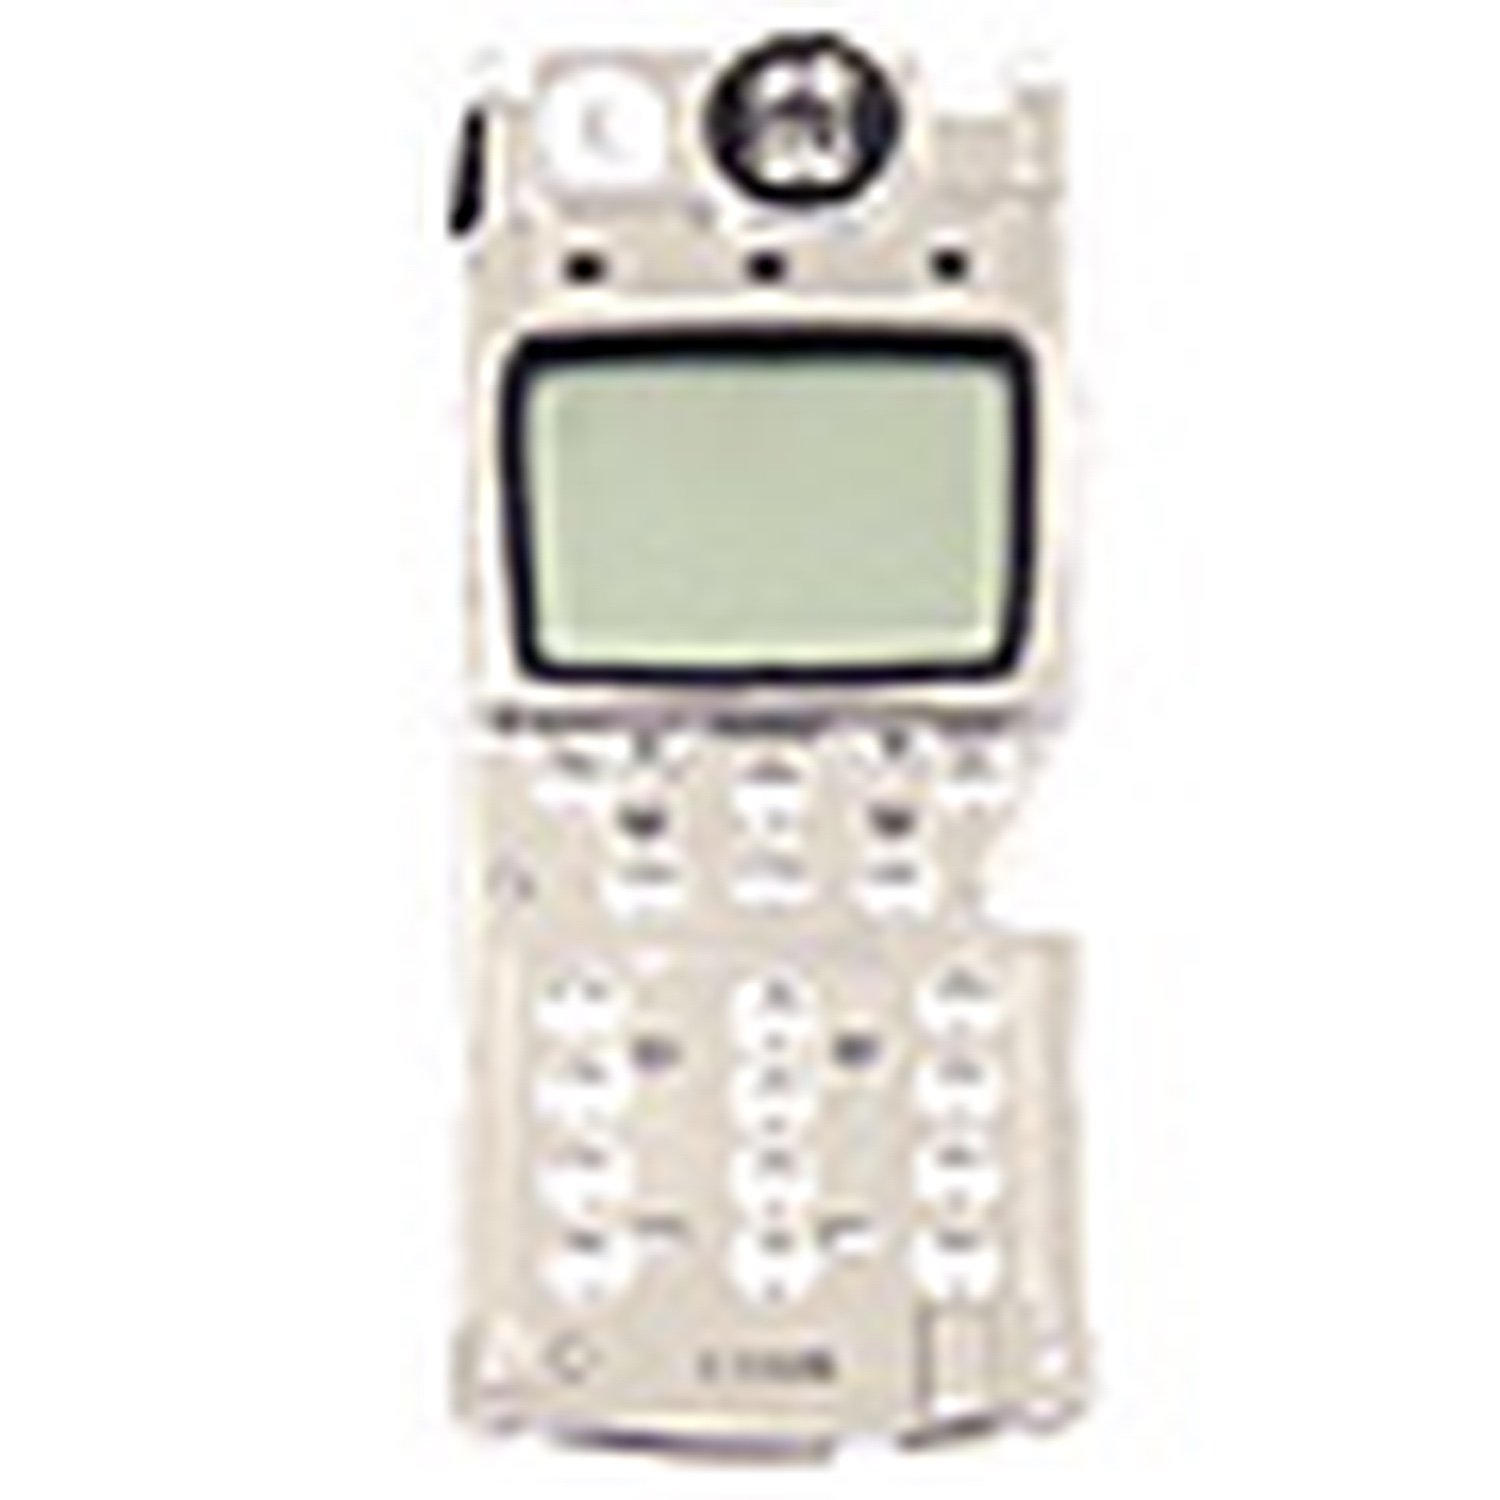 LCD Display Nokia 8210 Complete With Frame, Speaker